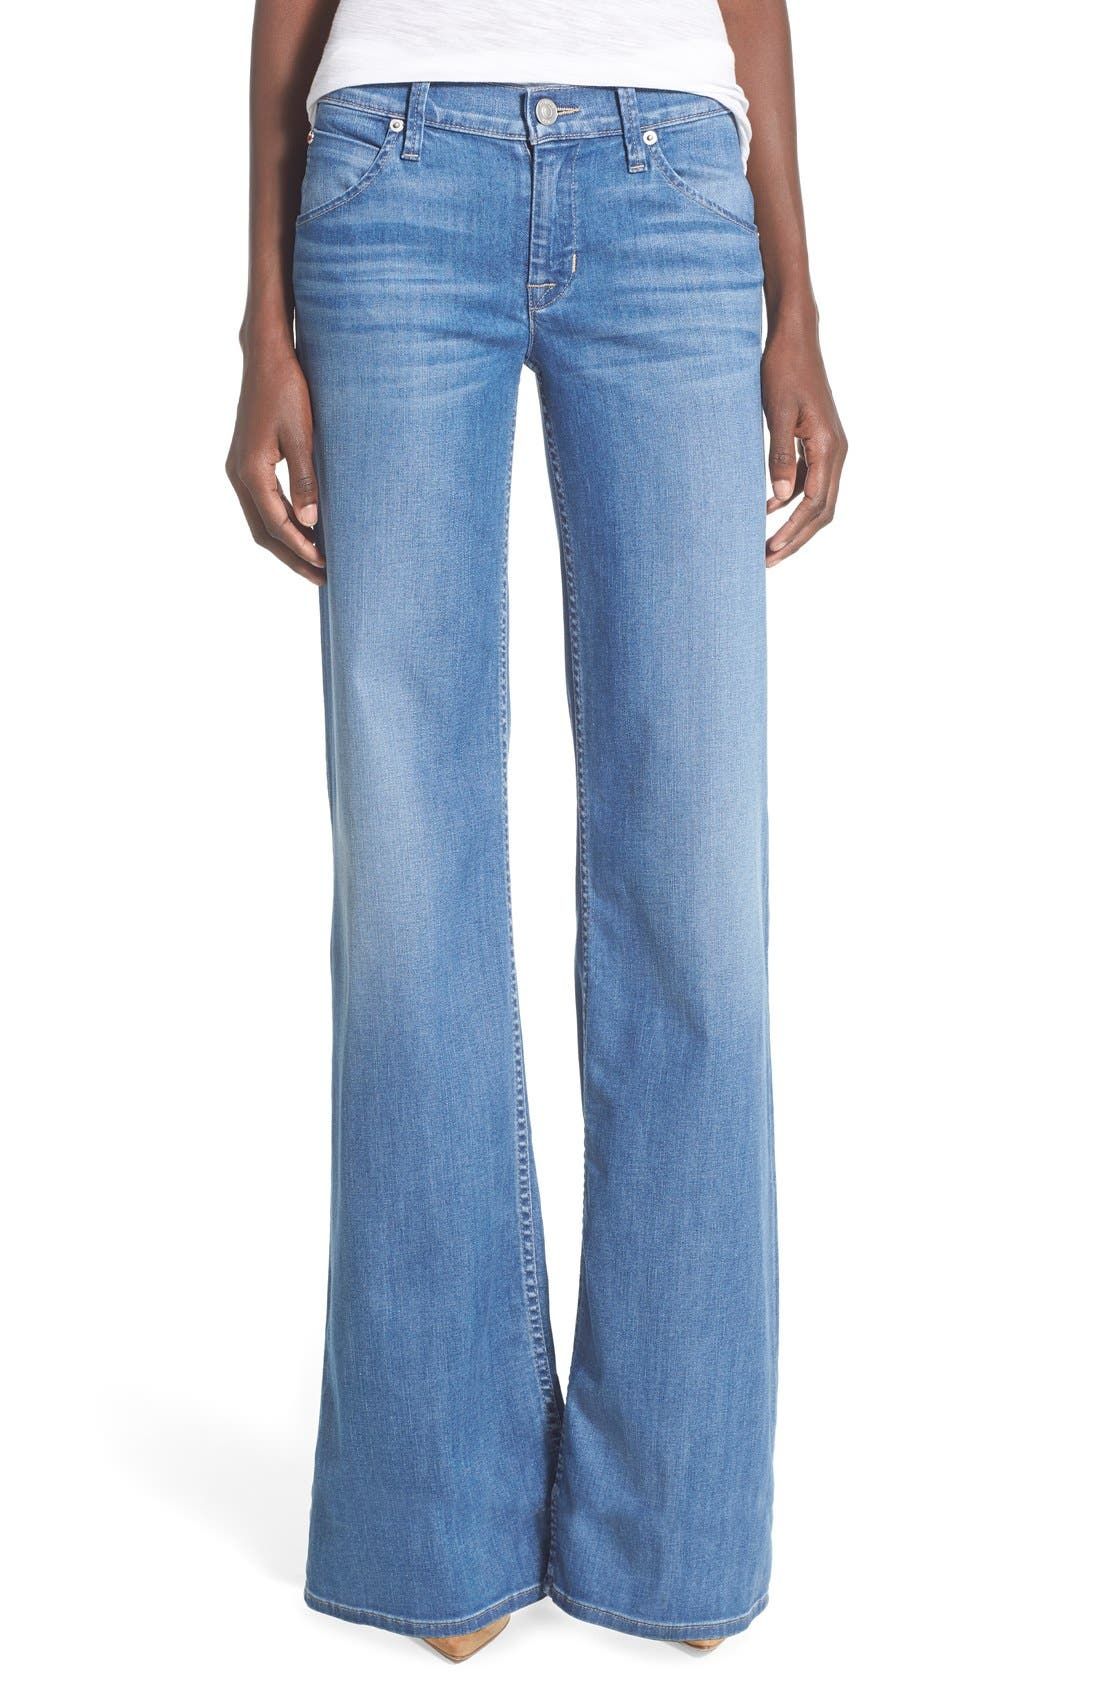 Alternate Image 1 Selected - Hudson Jeans 'Brooke' Wide Leg Jeans (Nightingale)